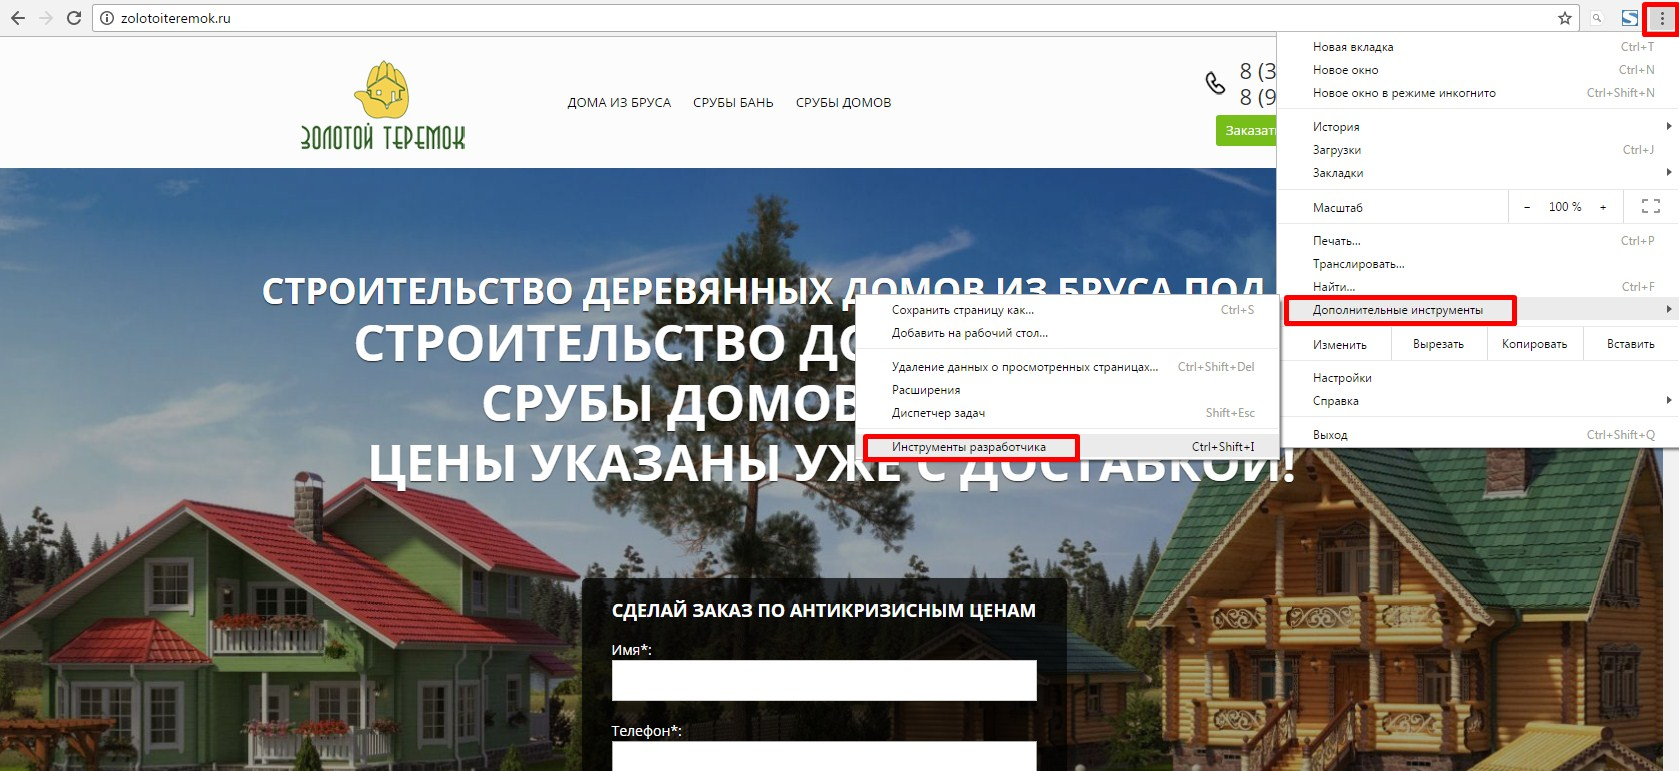 Адаптивность в Google Chrome